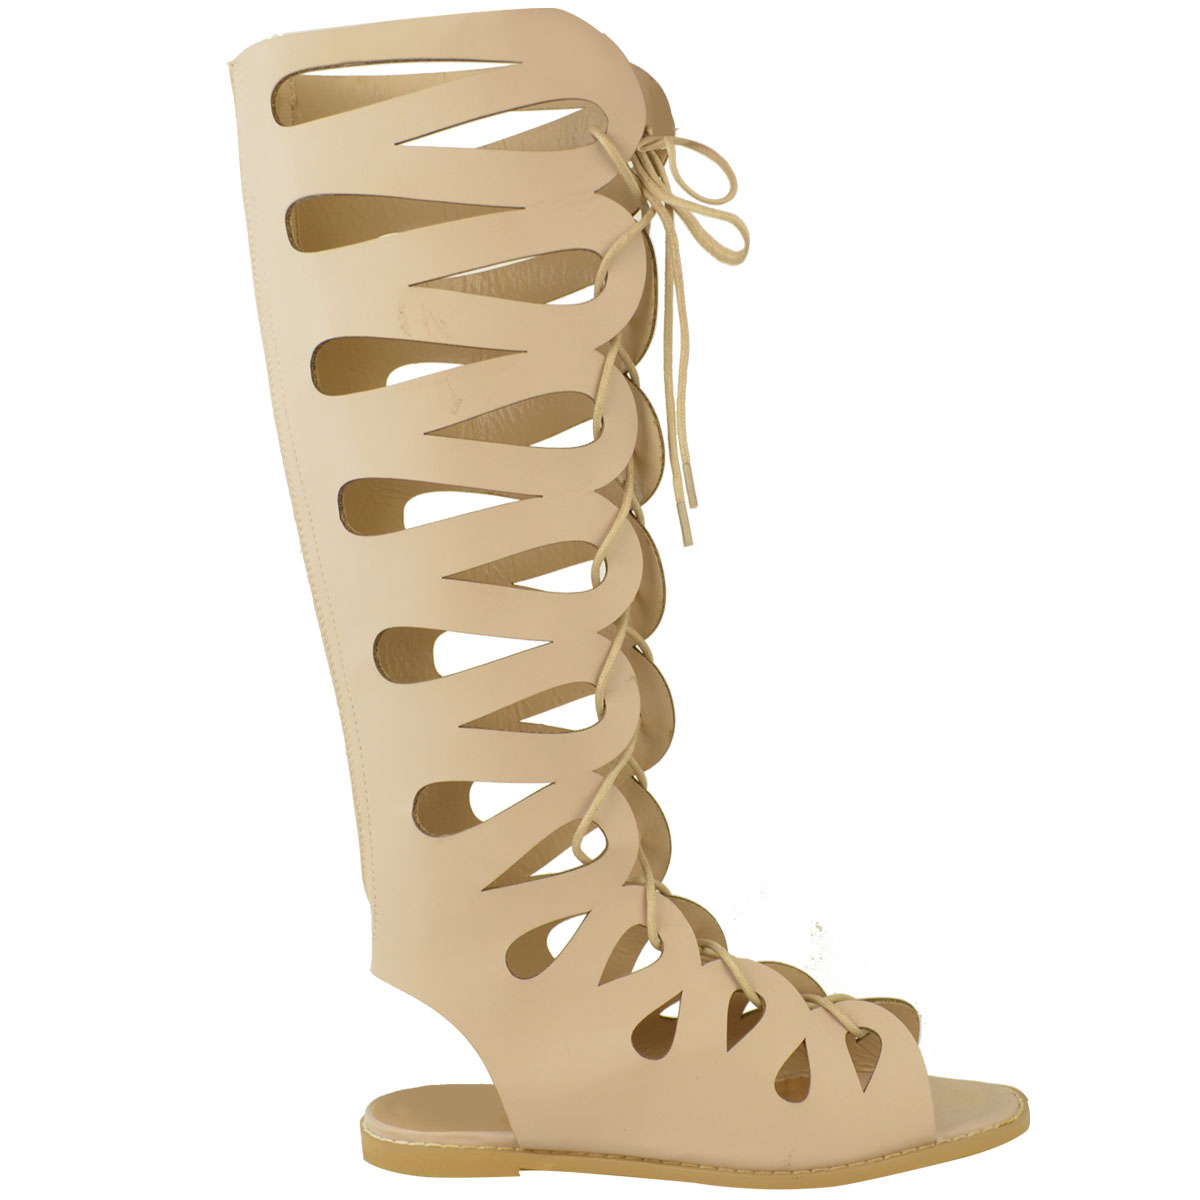 Details about Womens Ladies Flat Knee High Gladiator Sandals Strappy Beach Cut Out Boots Size